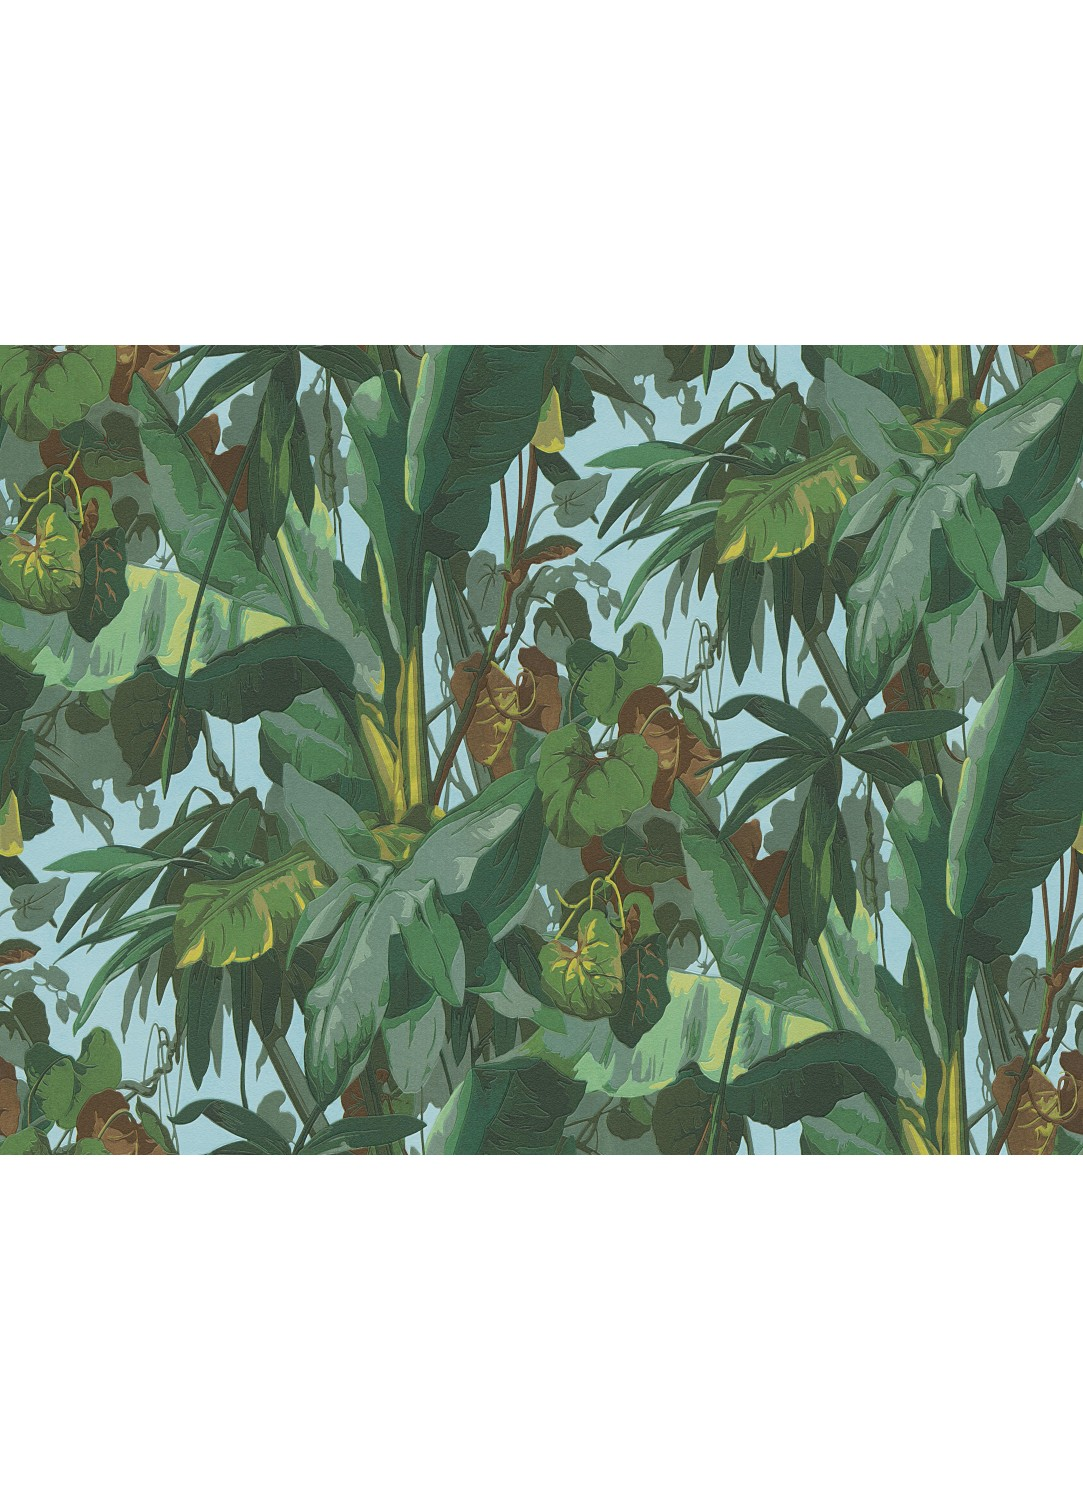 Papier Peint Jungle Homemaison Vente En Ligne Papiers Peints